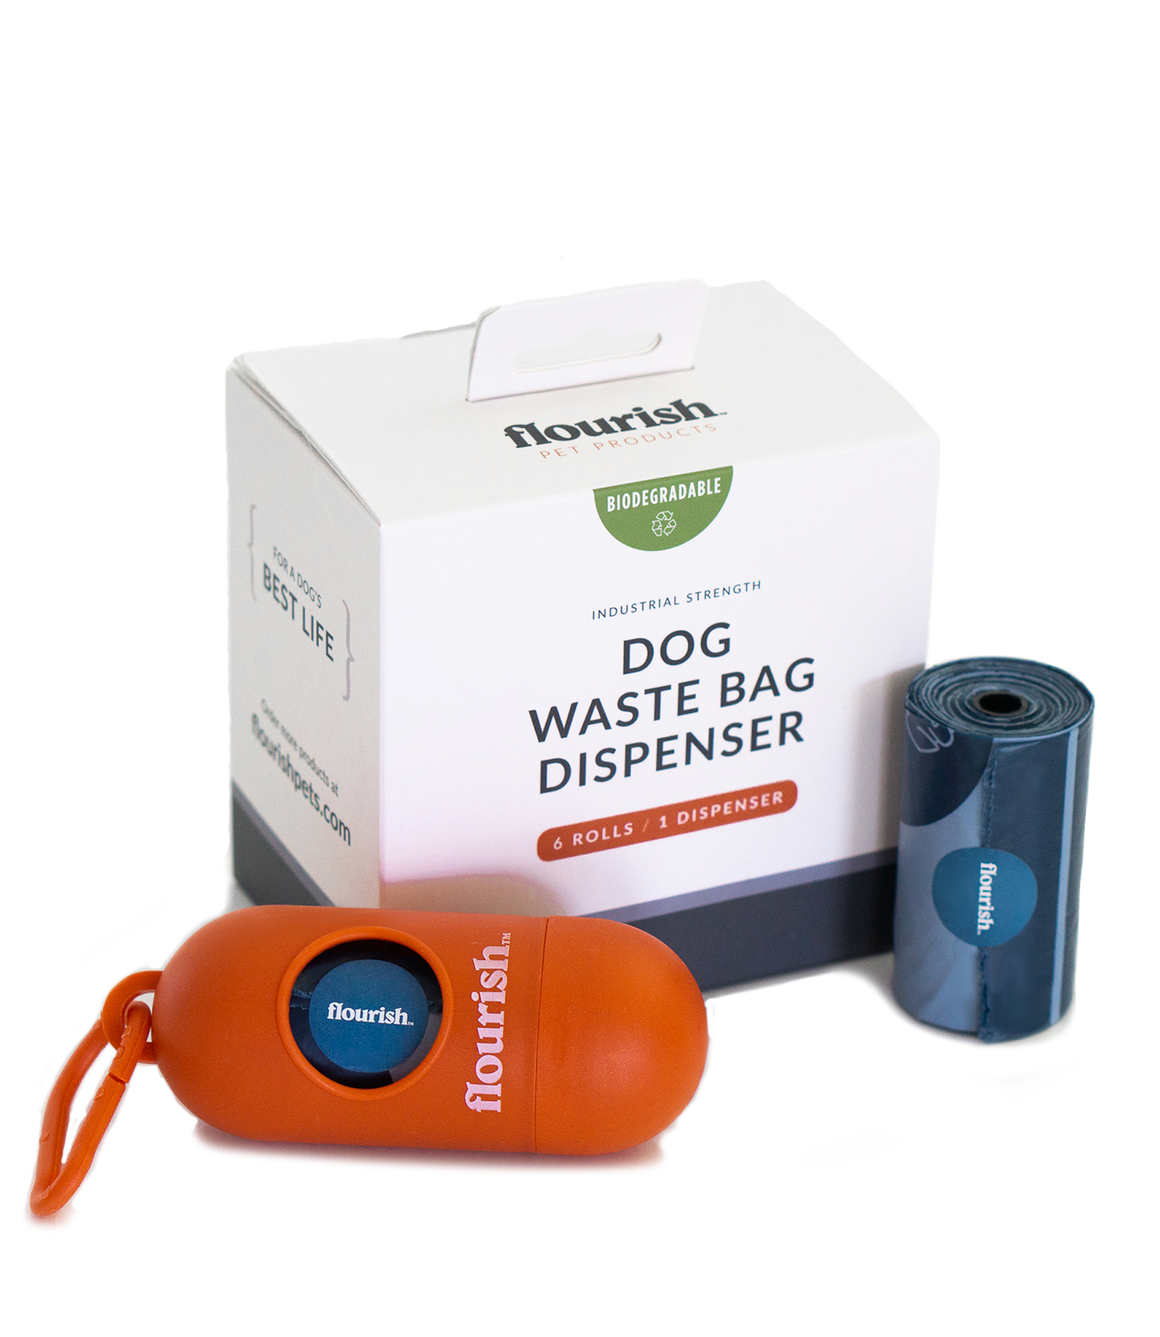 Dog Waste Bag Dispenser + 6 Rolls